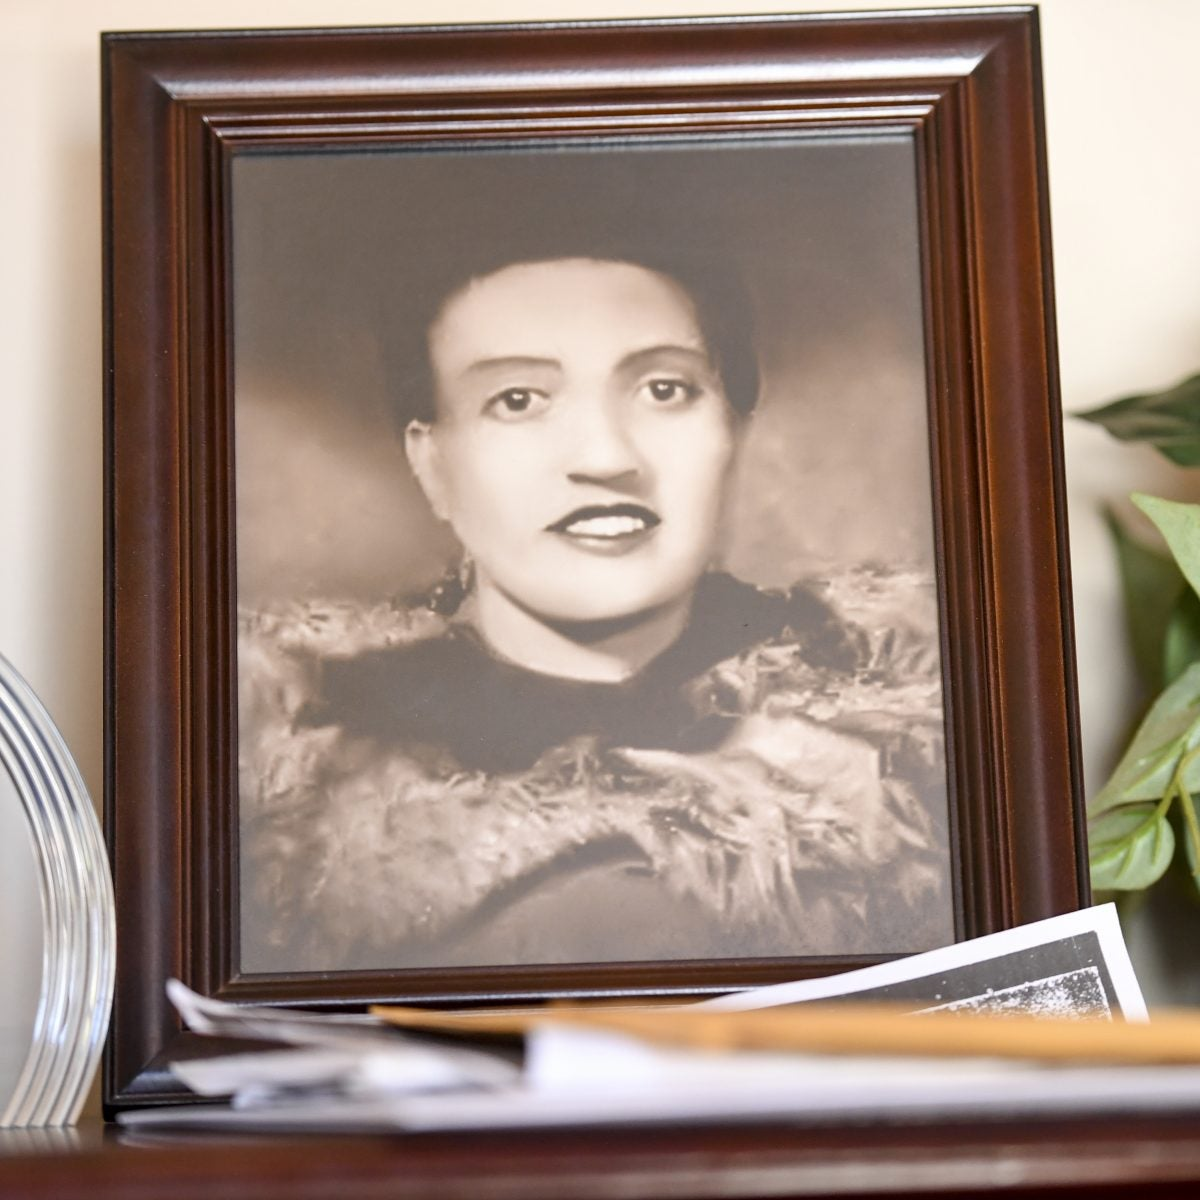 Family of Henrietta Lacks Plans to Sue Pharmaceutical Companies They Say Profited from Her Cancer Cells